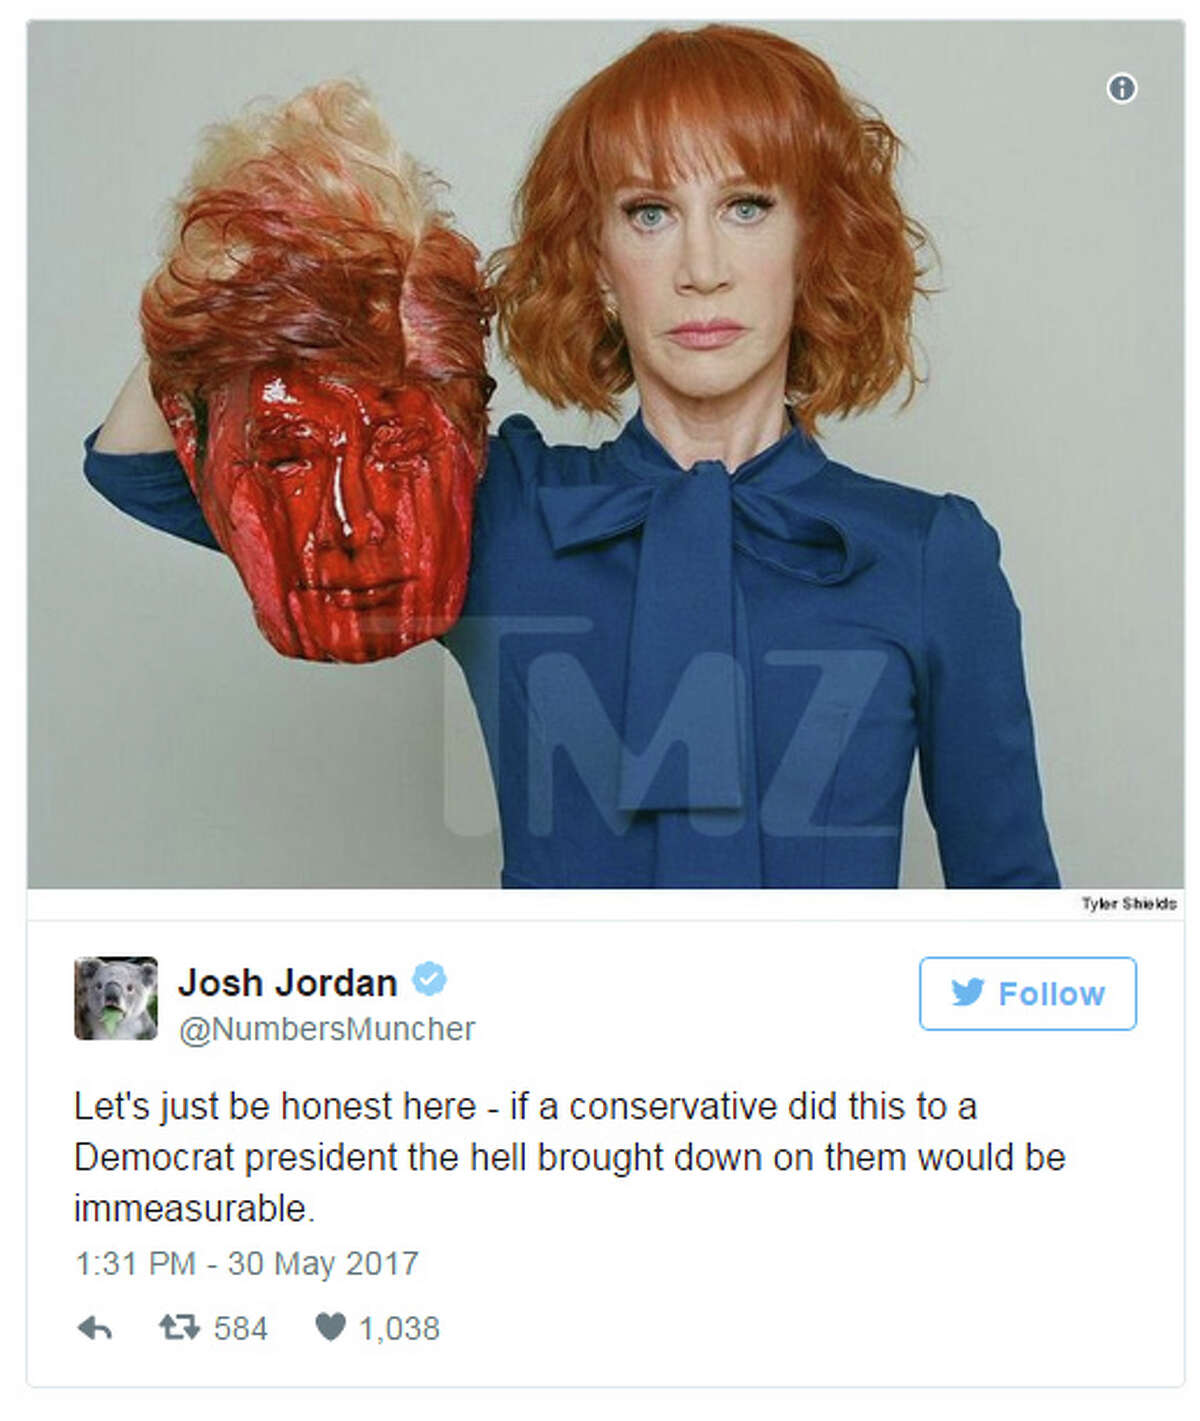 Kathy Griffin Trump photoWhat you'll need:Blue blouse, bloodied mask, and poor judgement. Source: http://www.mediaite.com/online/just-dont-twitter-goes-off-on-kathy-griffin-over-photoshoot-holding-severed-trump-head/